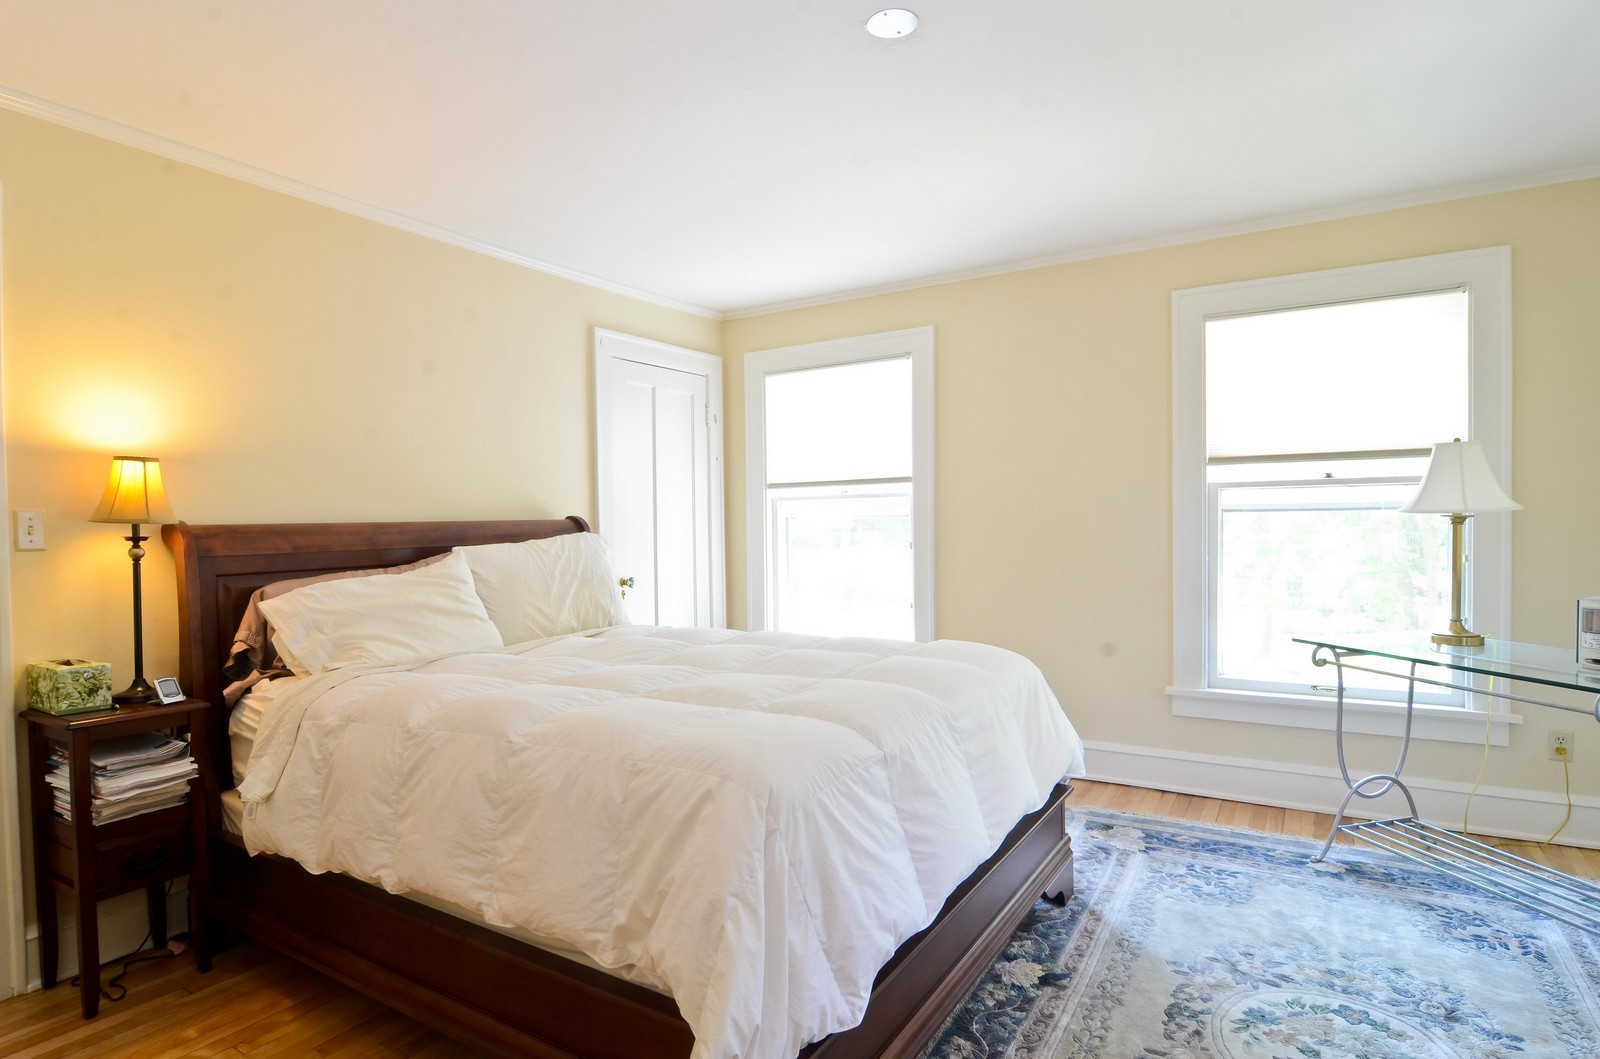 Real Estate Photography - 3444 N Hackett Ave, Milwaukee, WI, 53211 - Master Bedroom